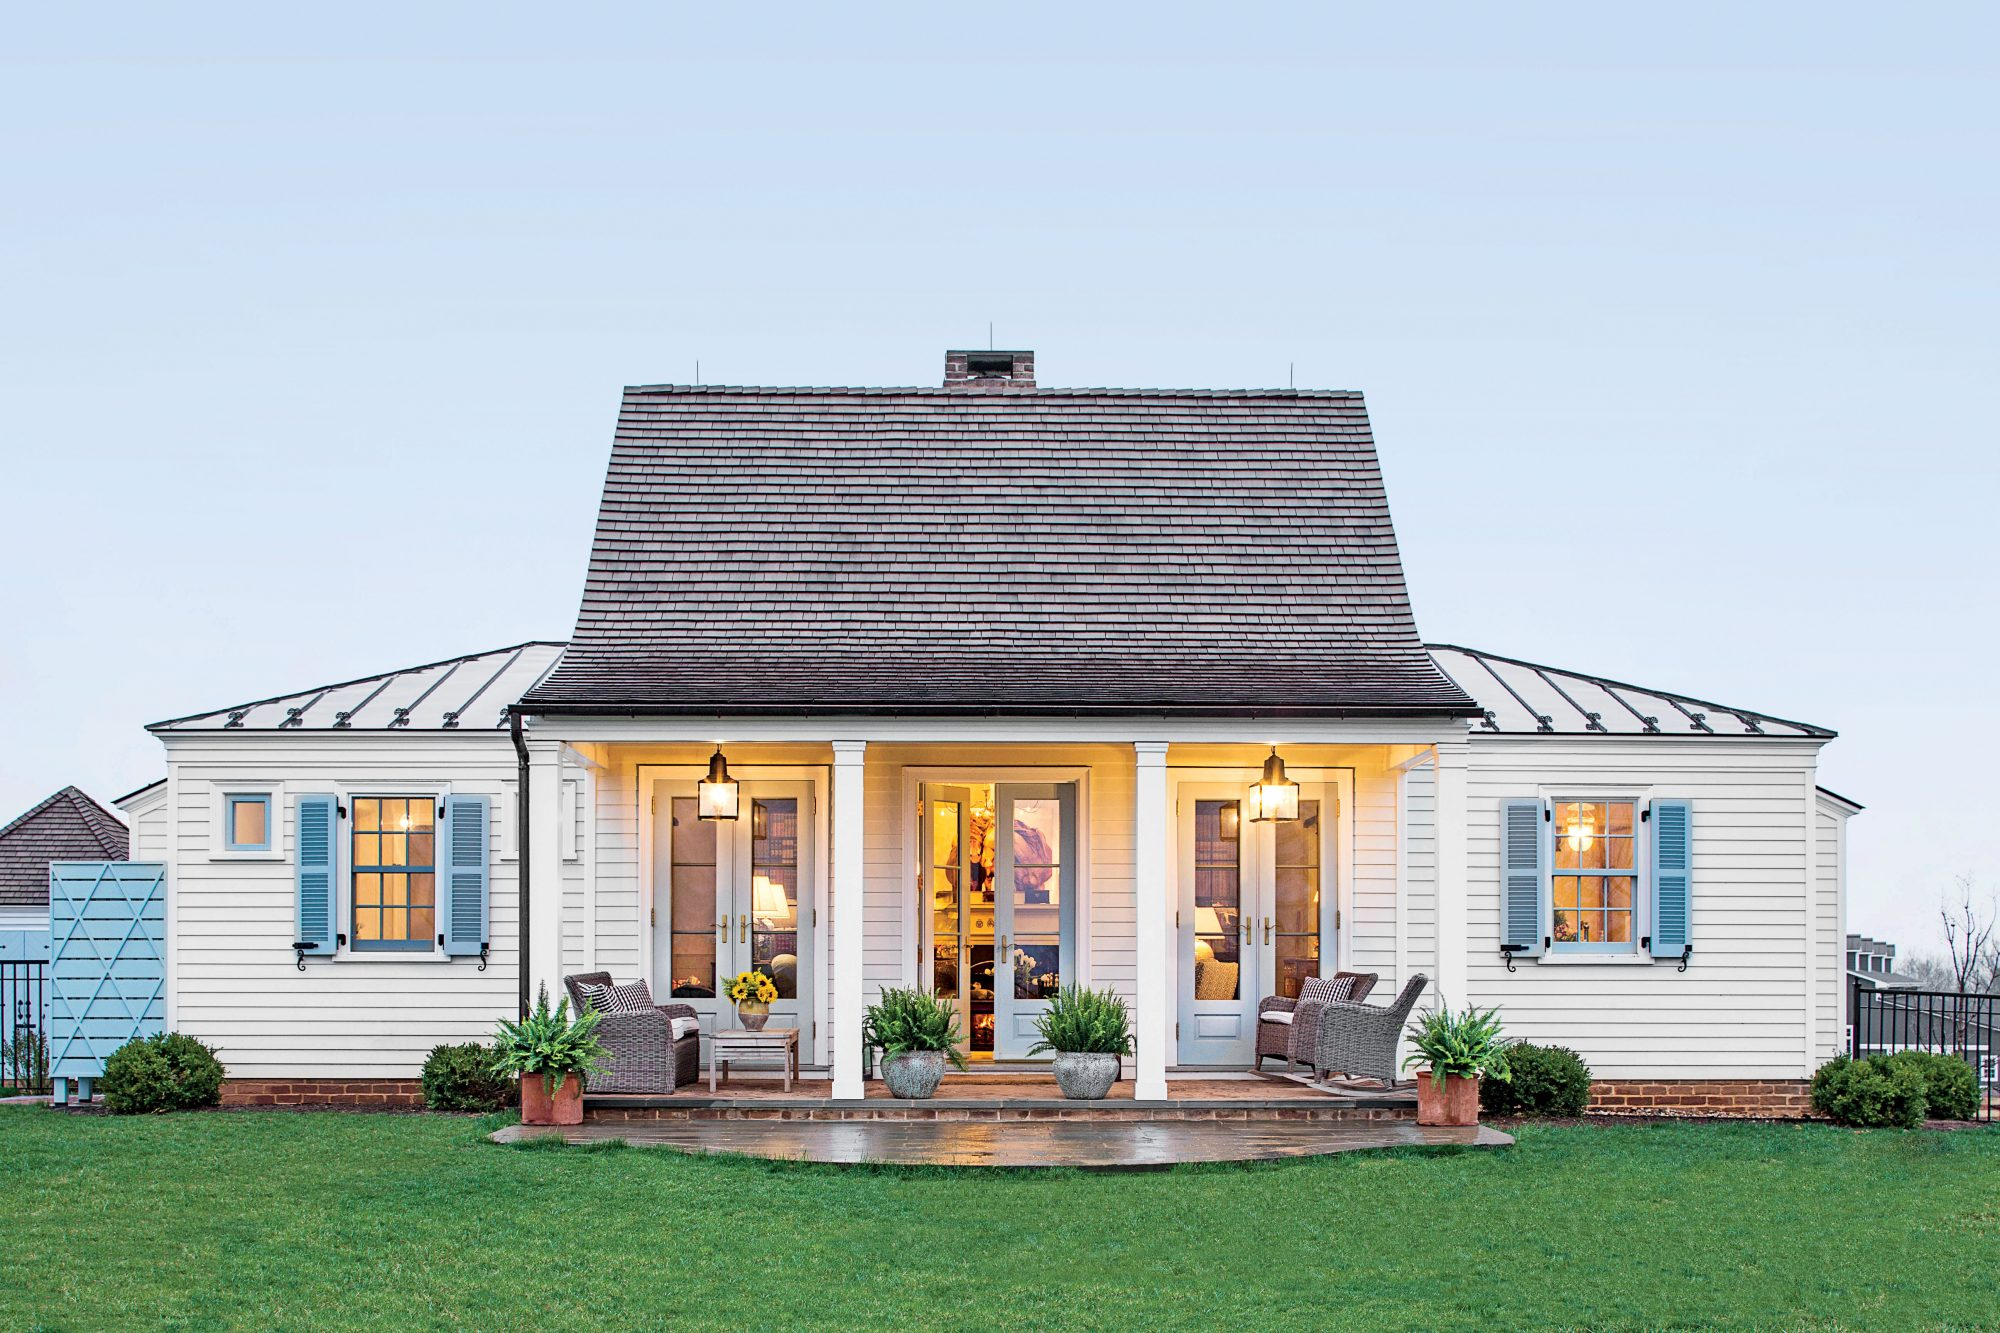 Our New Favorite 800 Square Foot Cottage That You Can Have